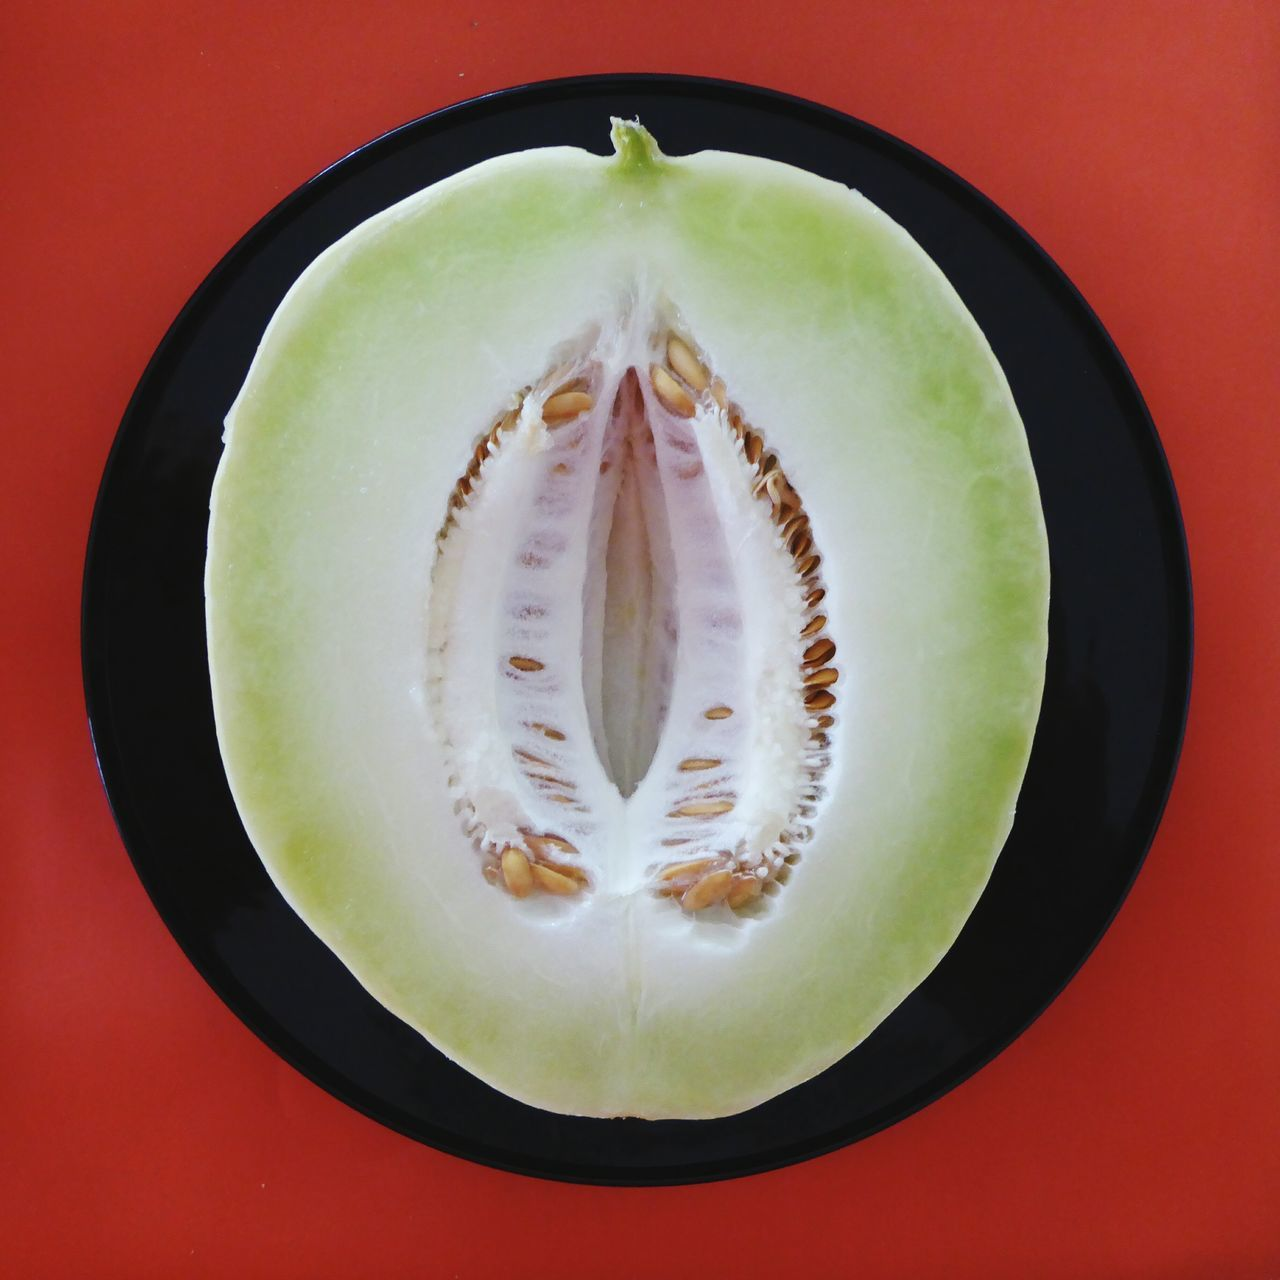 Directly Above Shot Of Halved Honeydew Melon In Plate